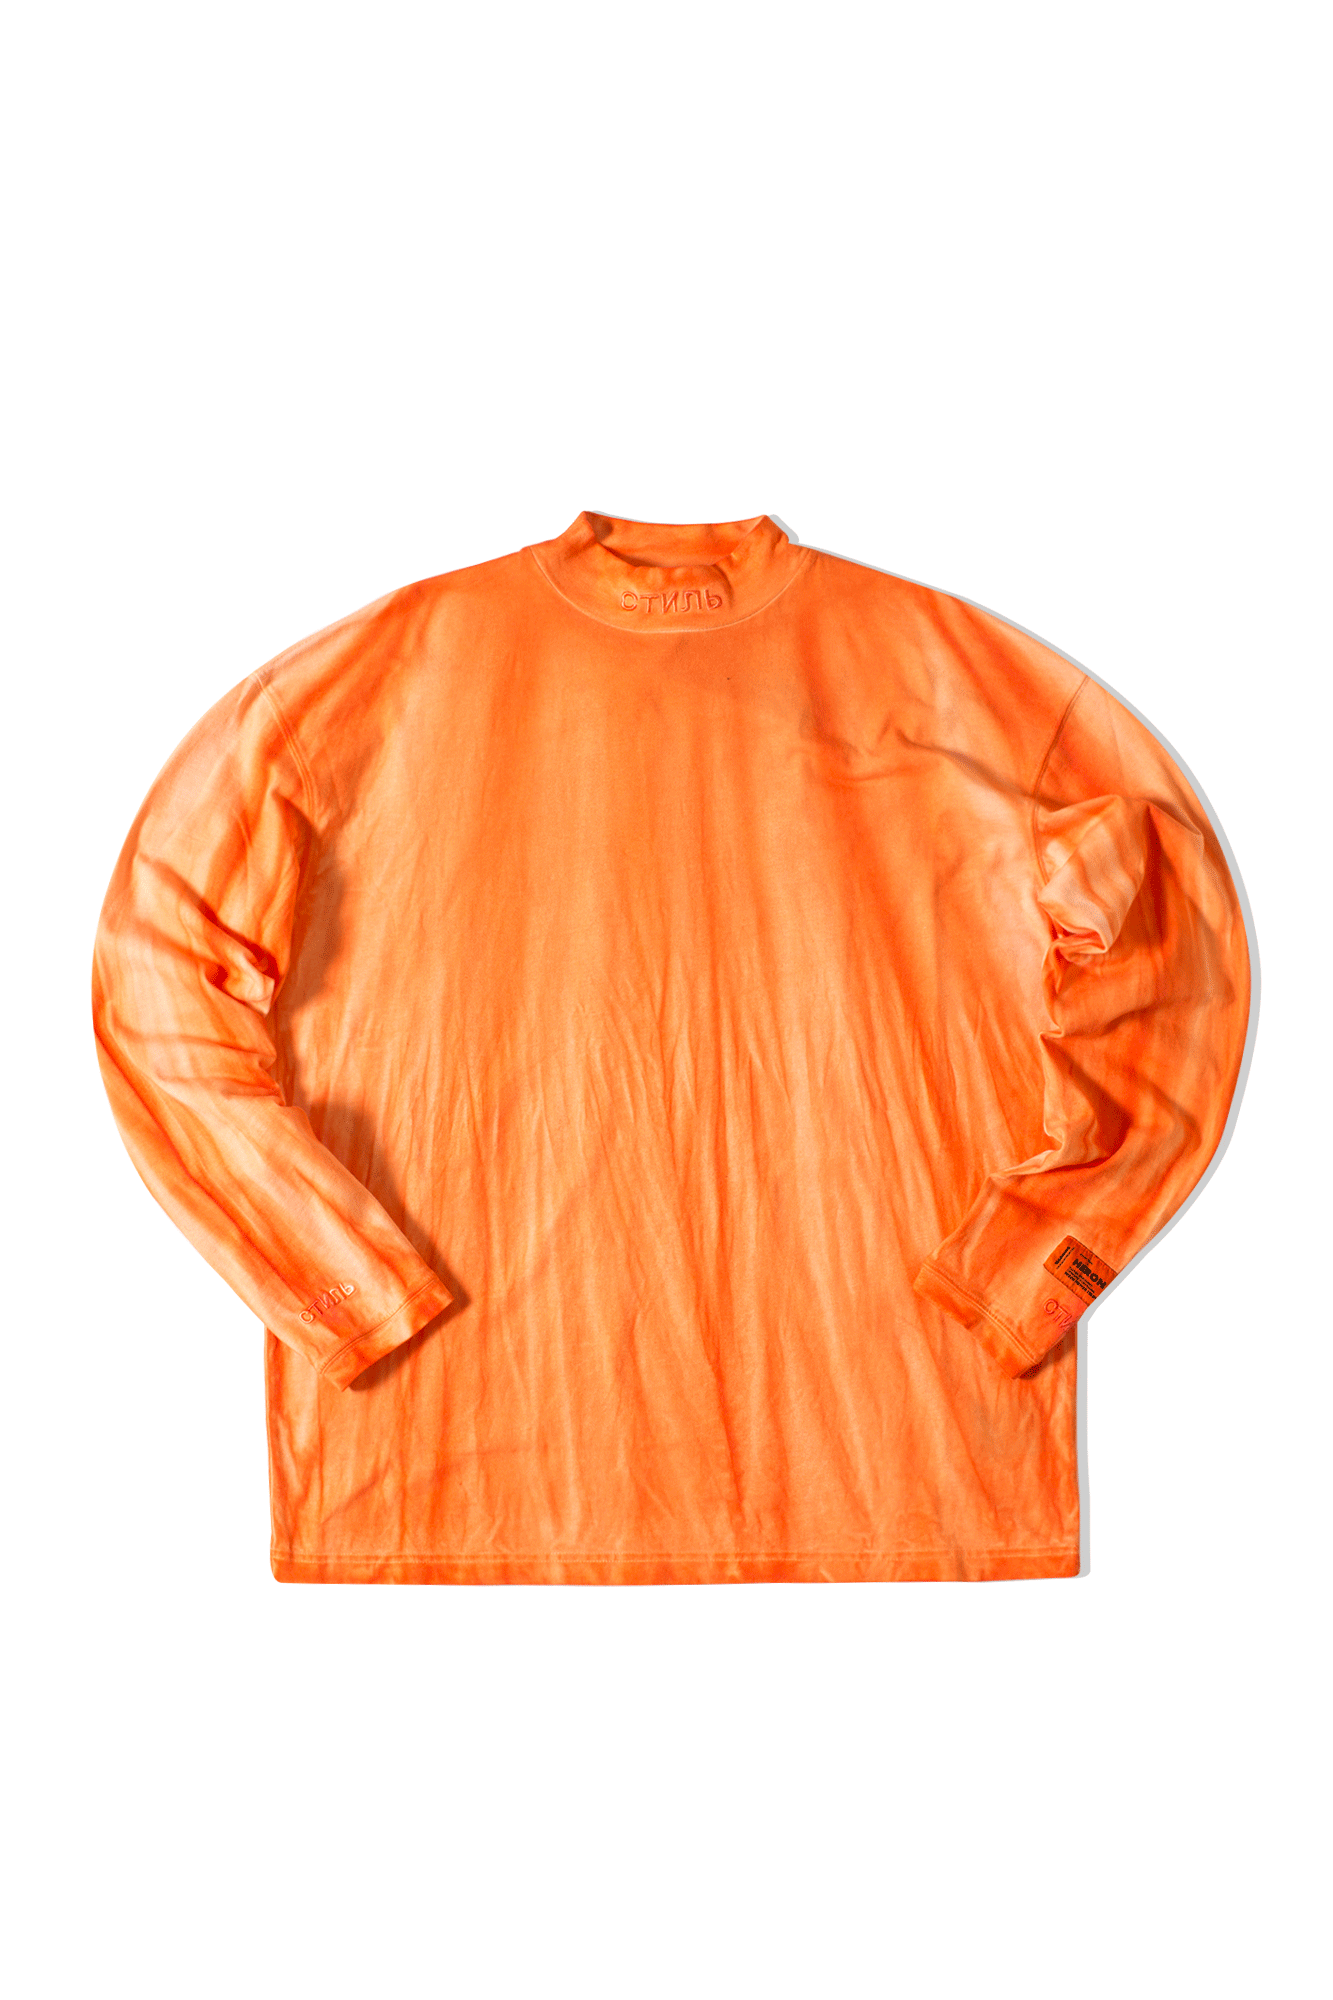 CTNMB Turtleneck Long Sleeve T-Shirt Arancione